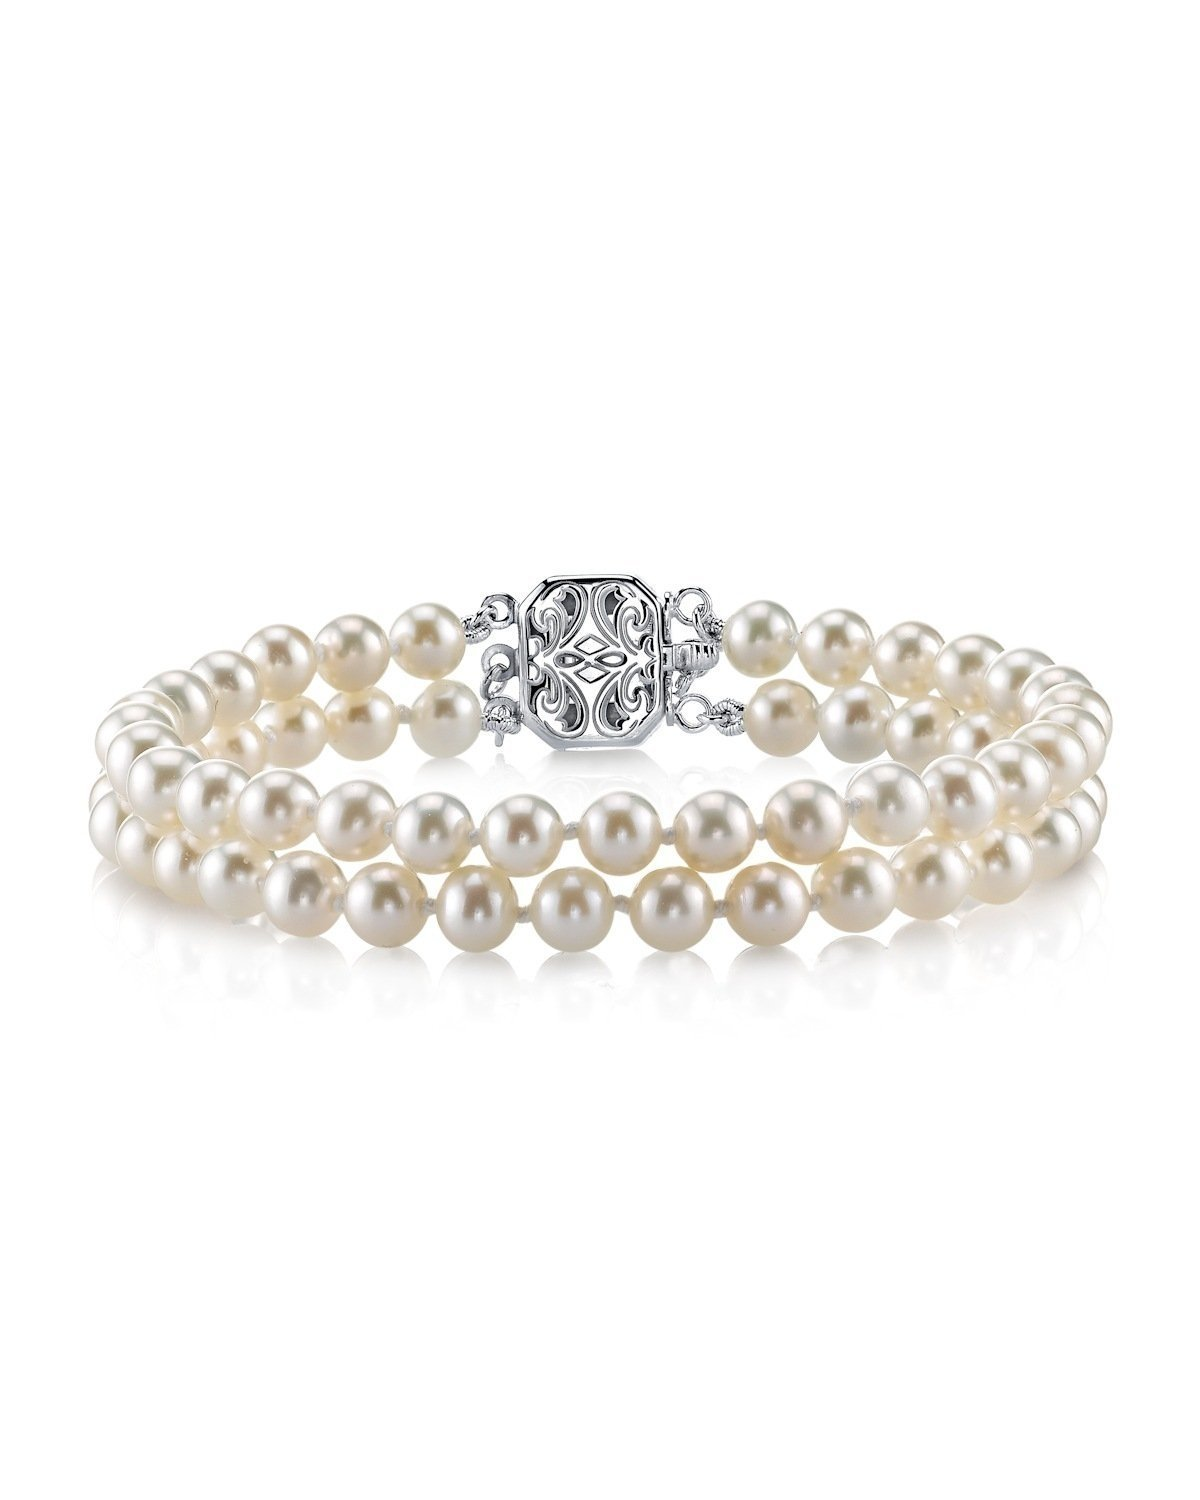 Round White Freshwater Cultured Pearl Double Strand Bracelet – AAAA Quality